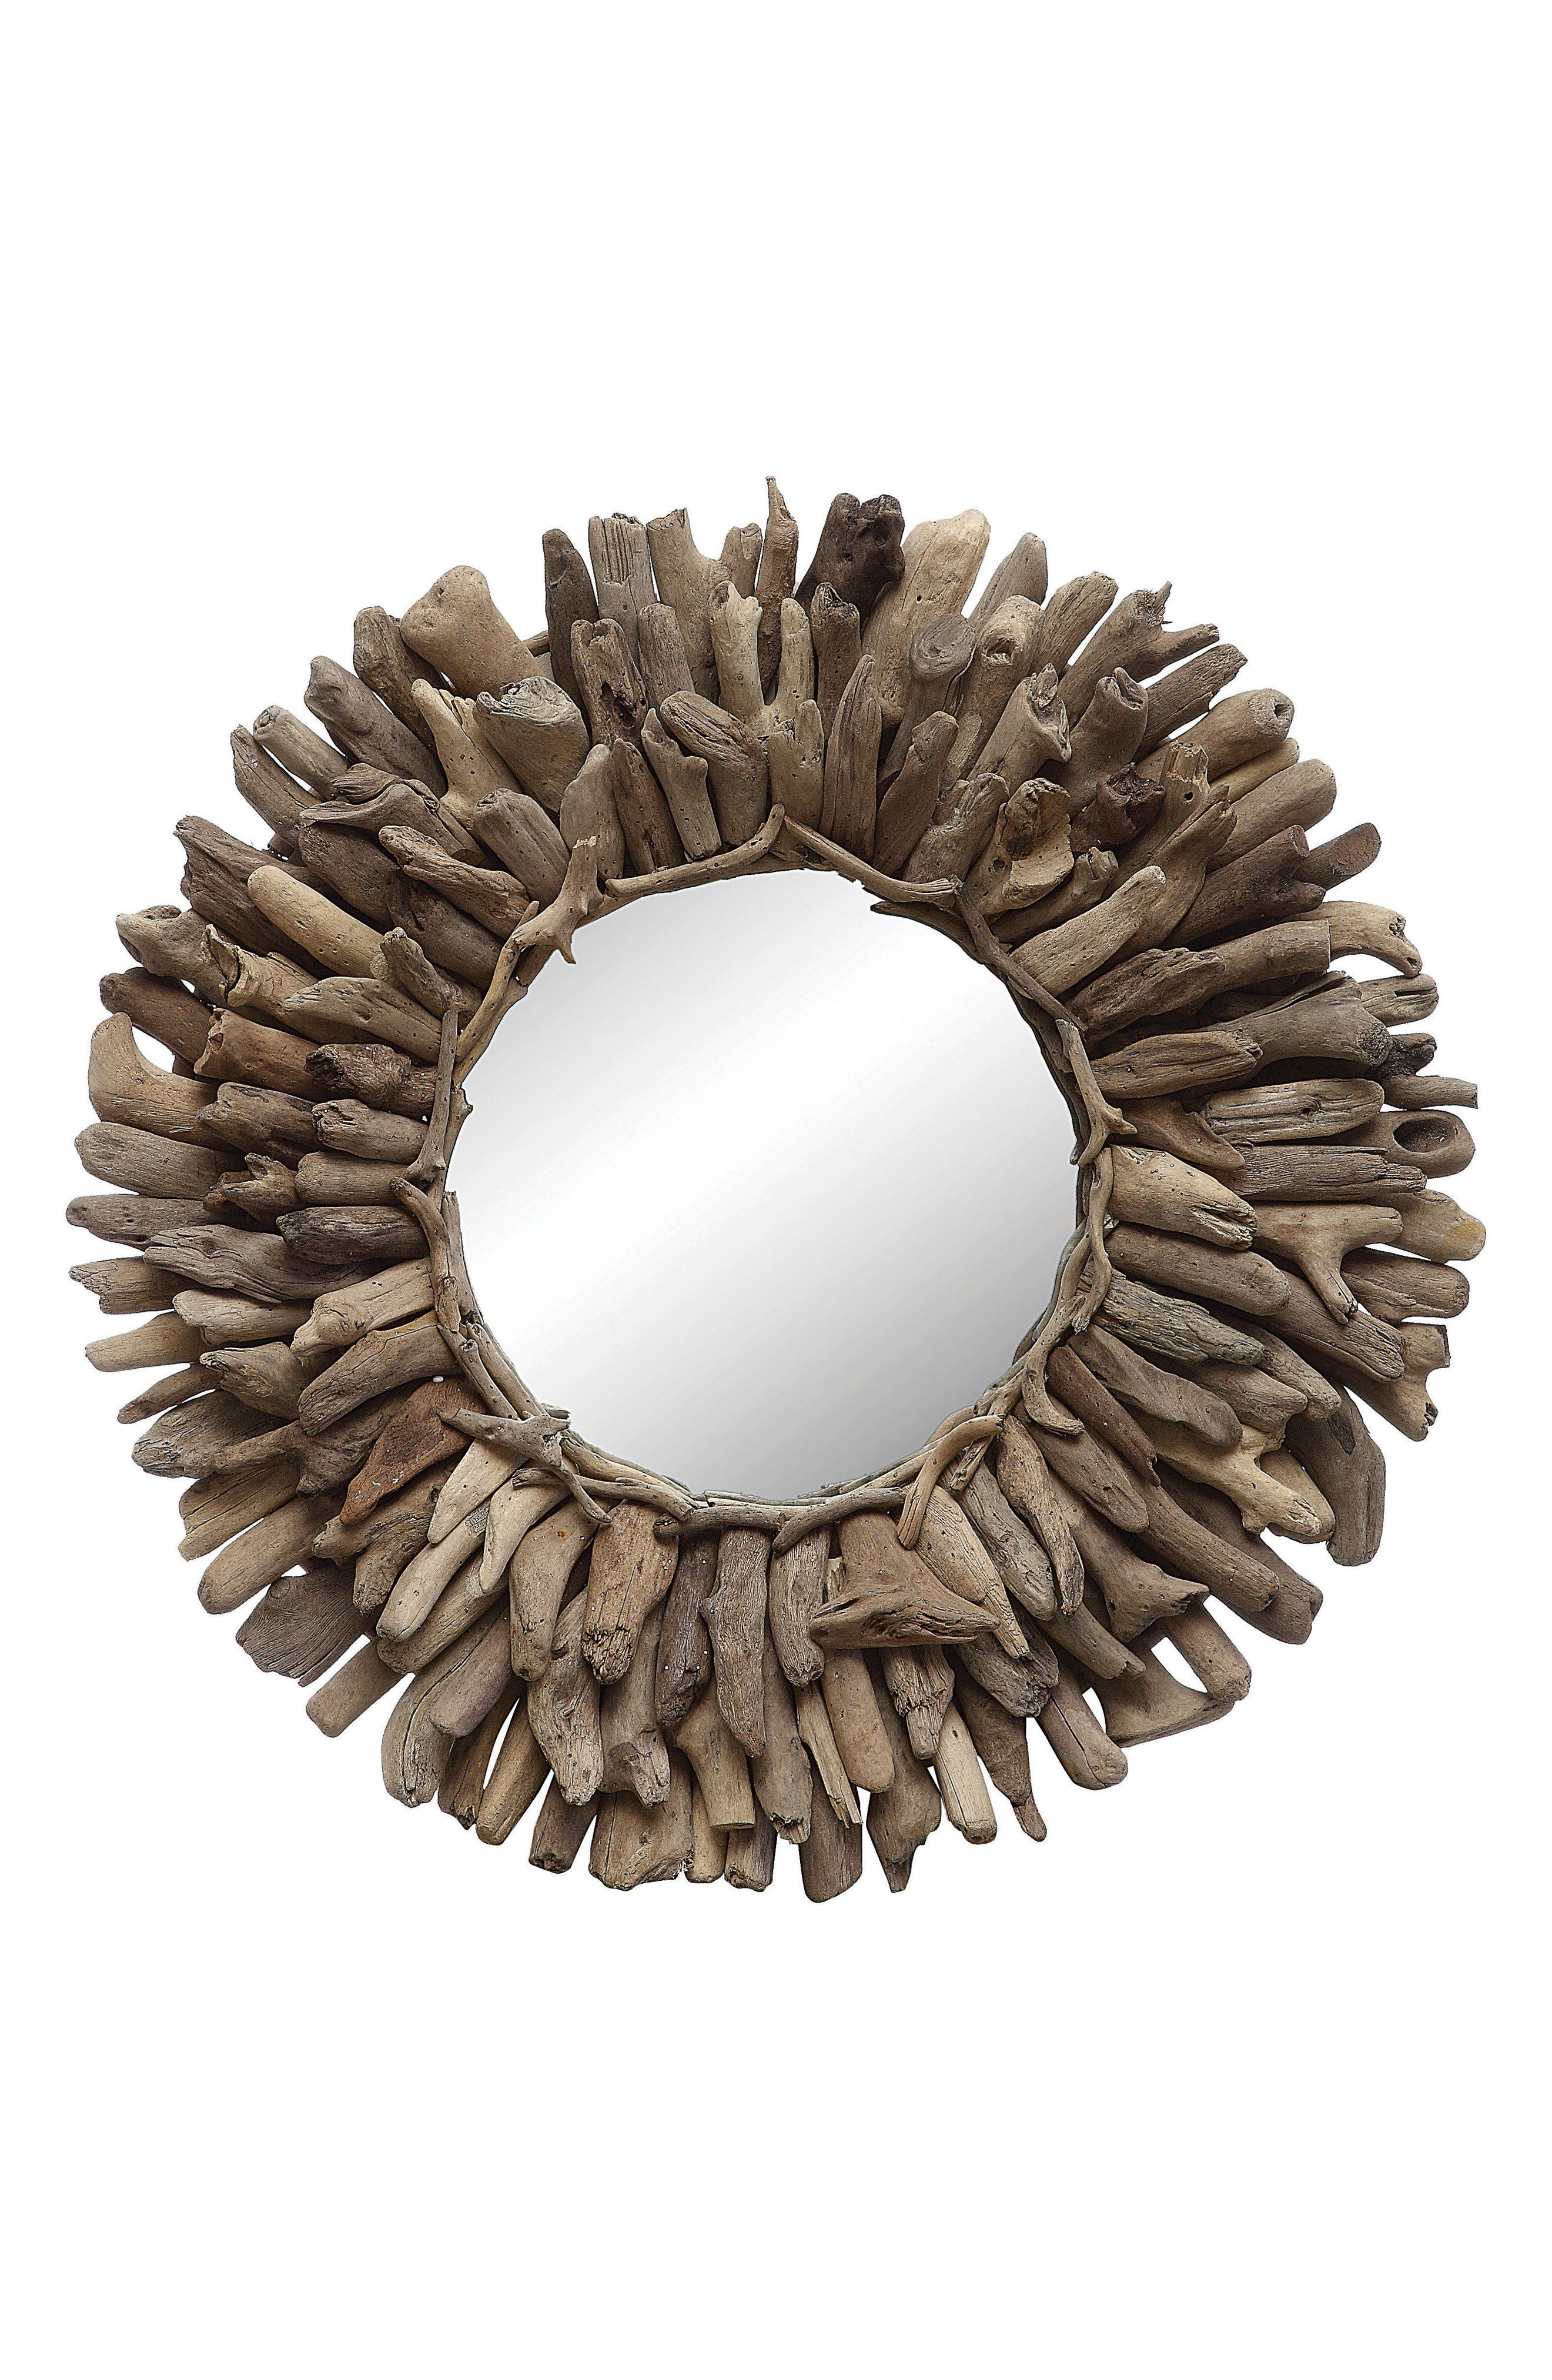 Driftwood Round Mirror,                             Main thumbnail 1, color,                             200